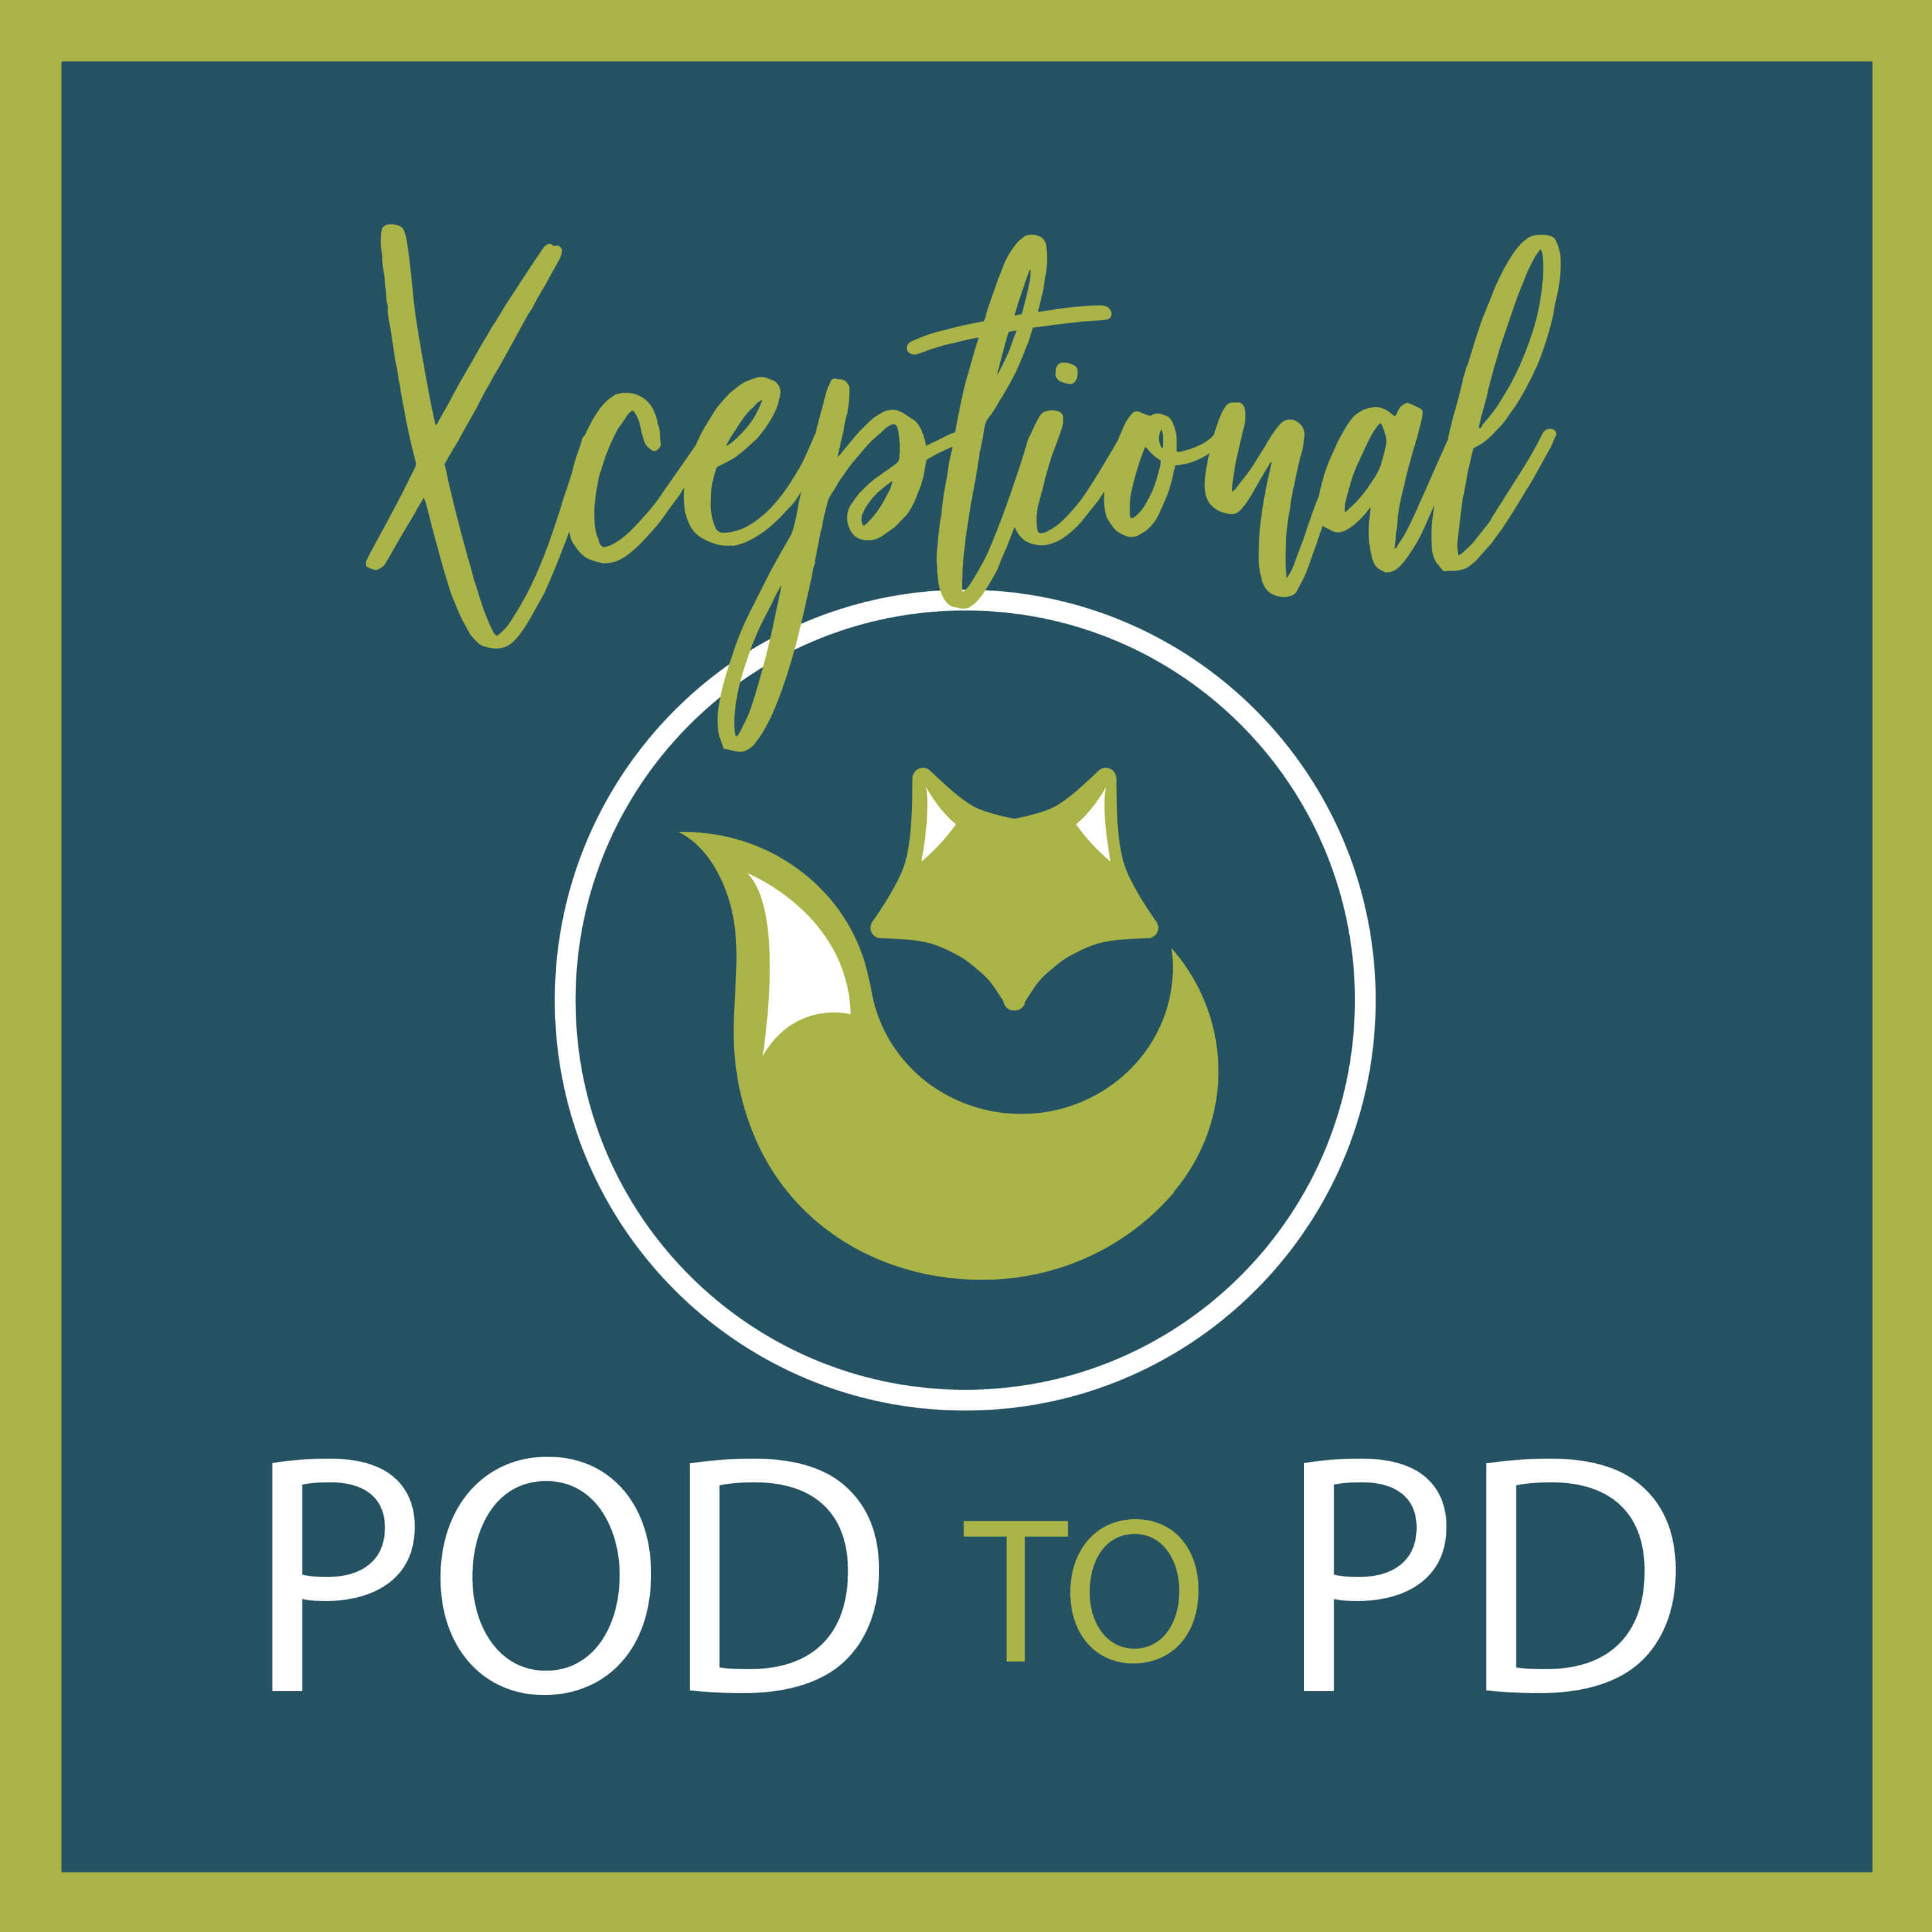 Xceptional Pod to PD